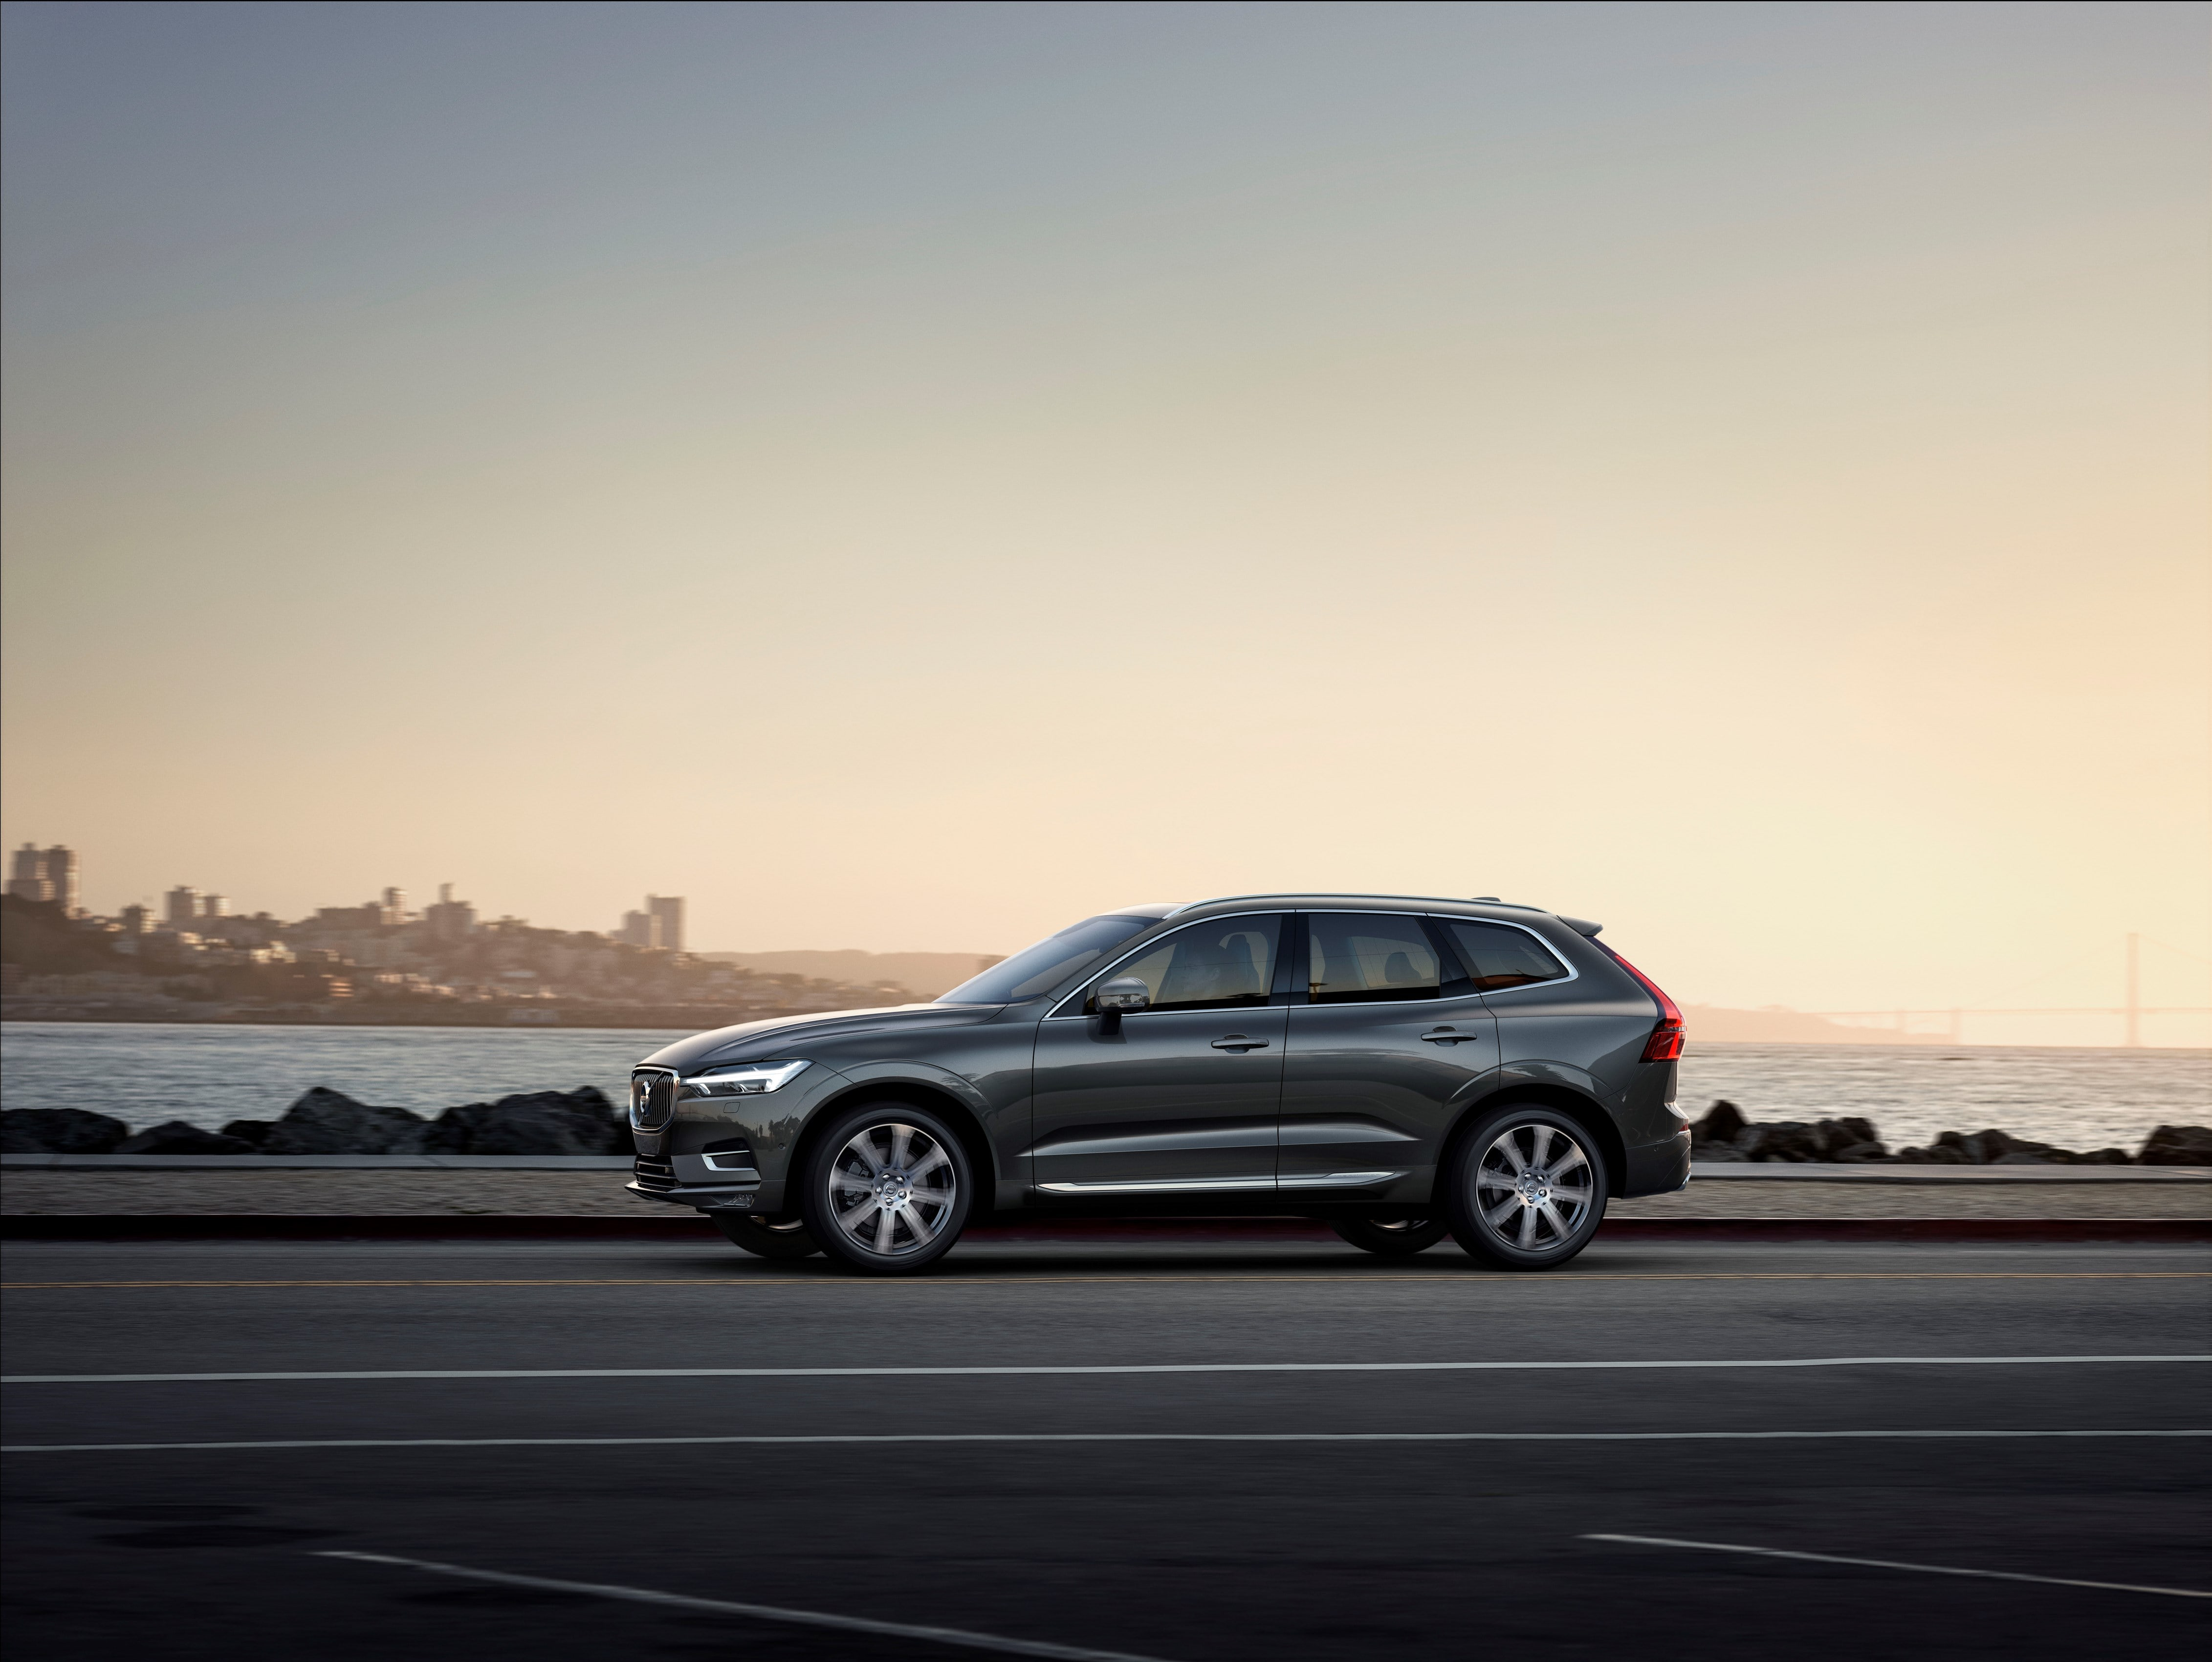 205067_The_new_Volvo_XC60-min